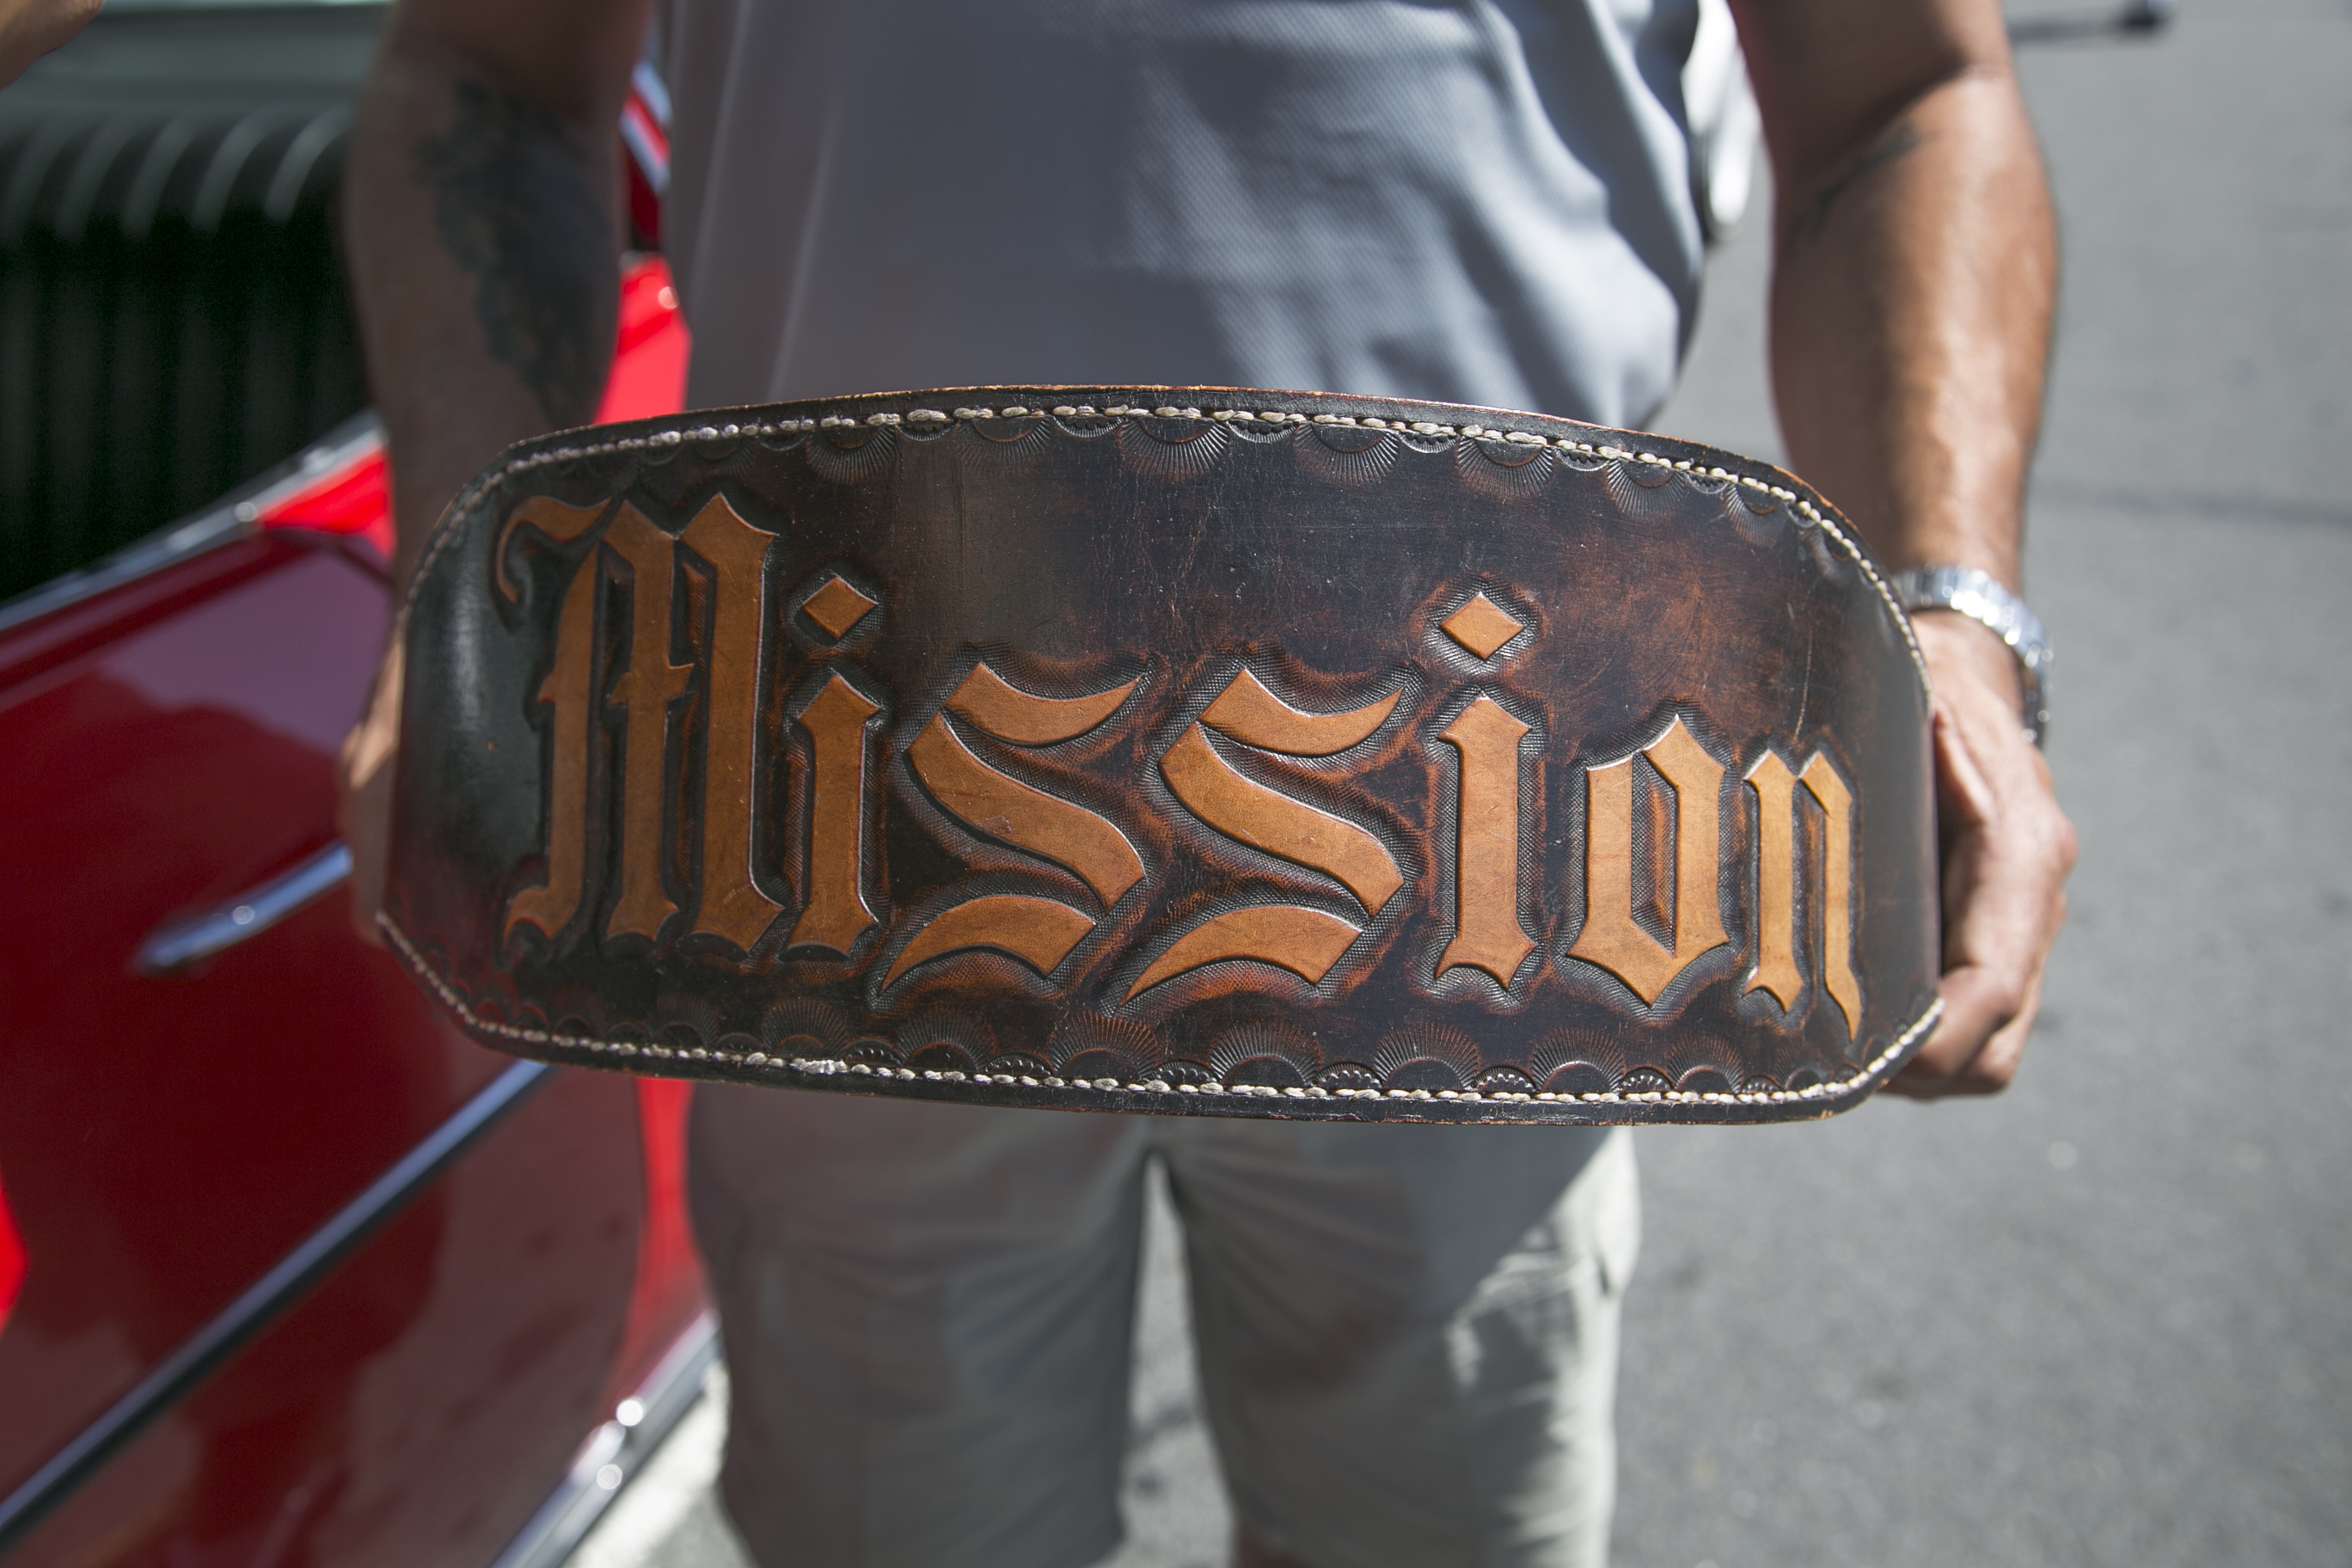 City College English professor Benjamin Bac Sierra holds his brother's etched-weight belt from his time in prison during the 1980s. His brother graduated from City College and encouraged Bac Sierra to enroll. Bac Sierra bought his first lowrider car when he received tenure at City College. (All photos by Gabriella Angotti-Jones/The Guardsman)Jones).